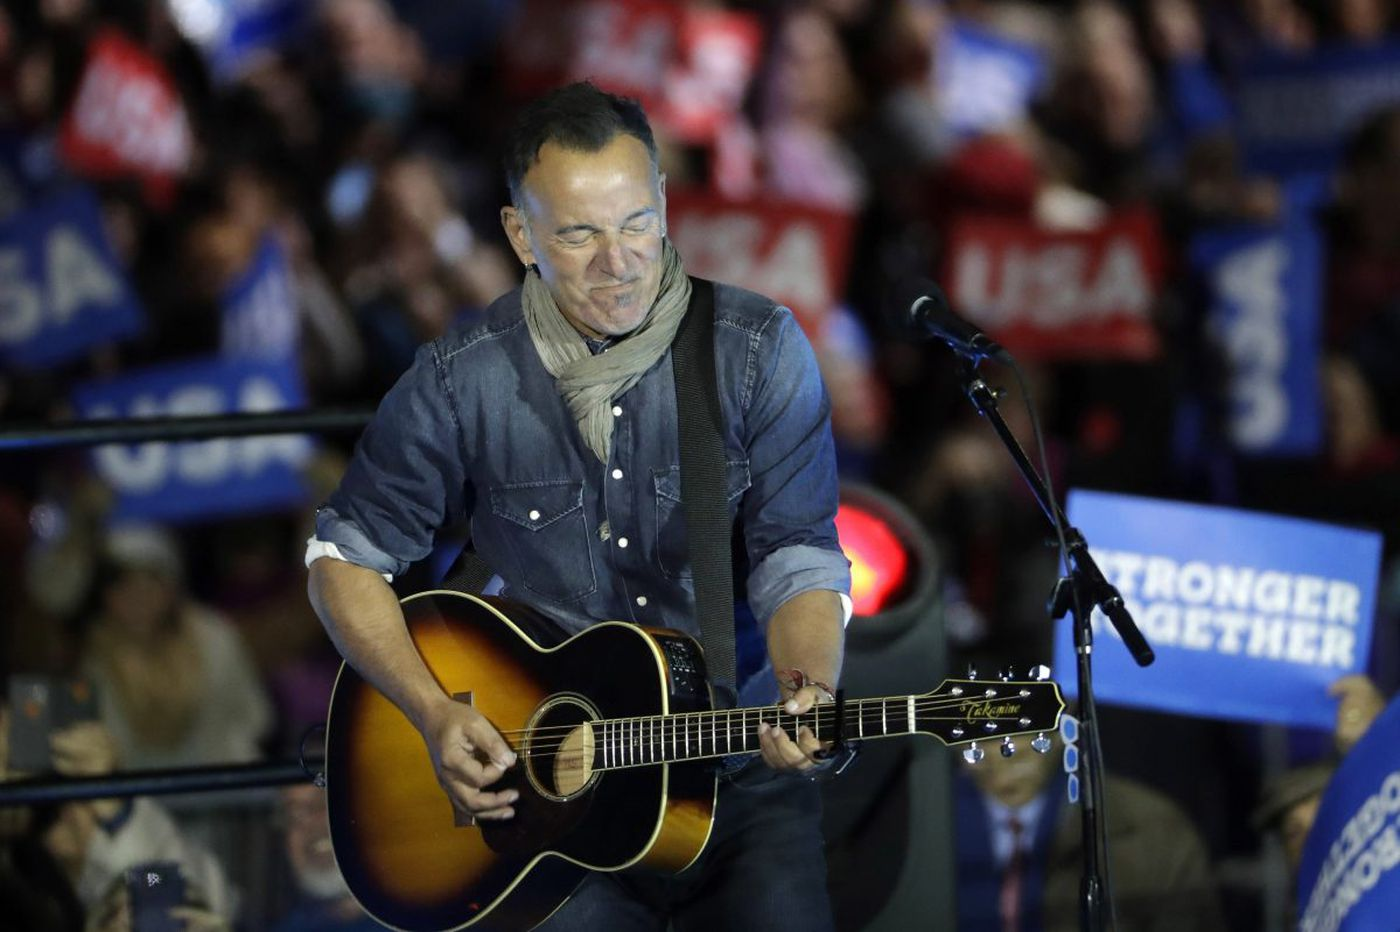 Profiteering on Broadway: How can Bruce Springsteen charge $850 per ticket? | Opinion